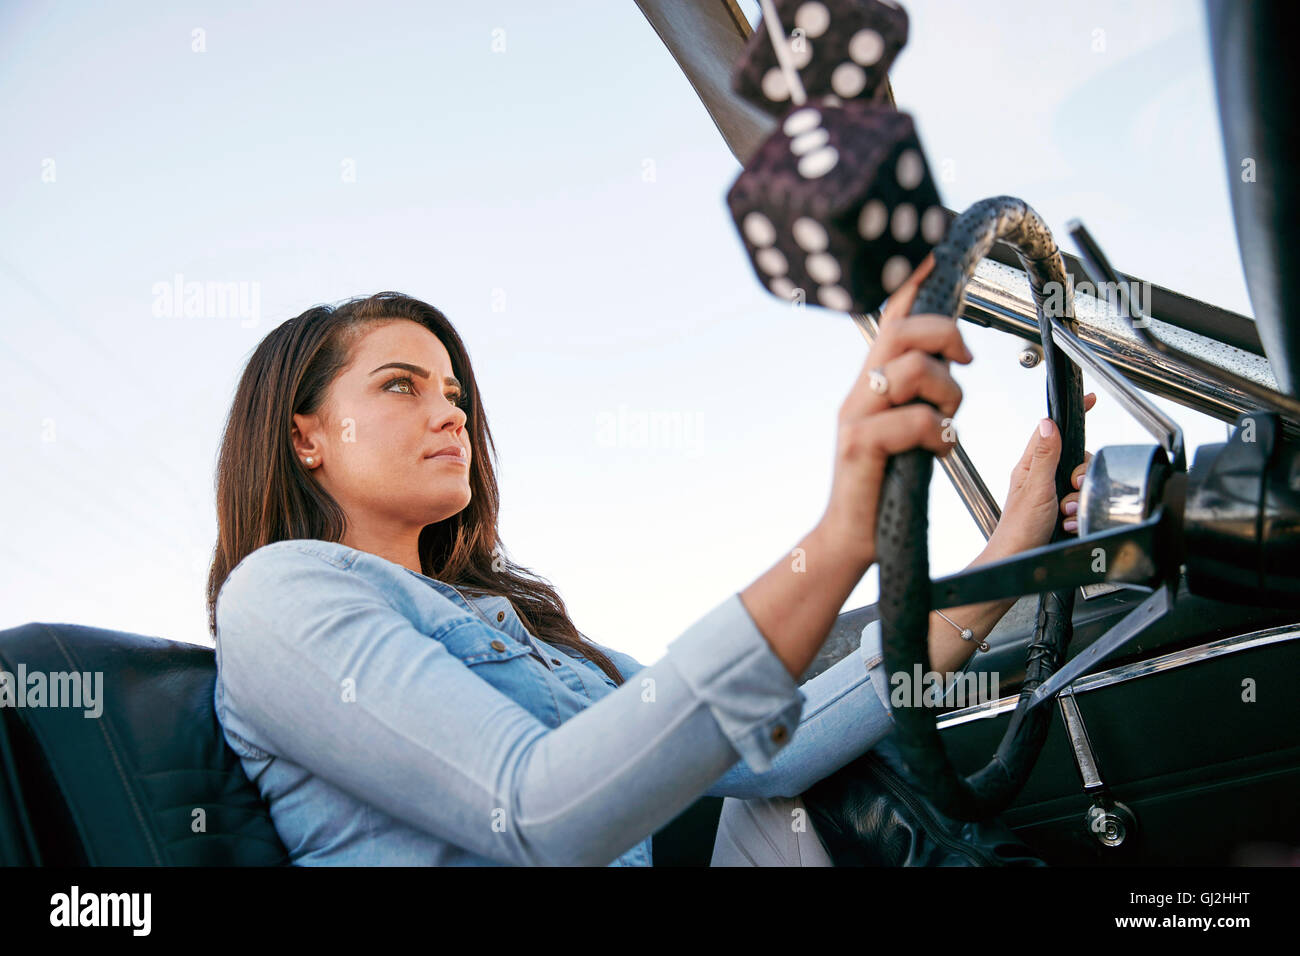 Low angle view of woman driving convertible car, Los Angeles, California, USA - Stock Image